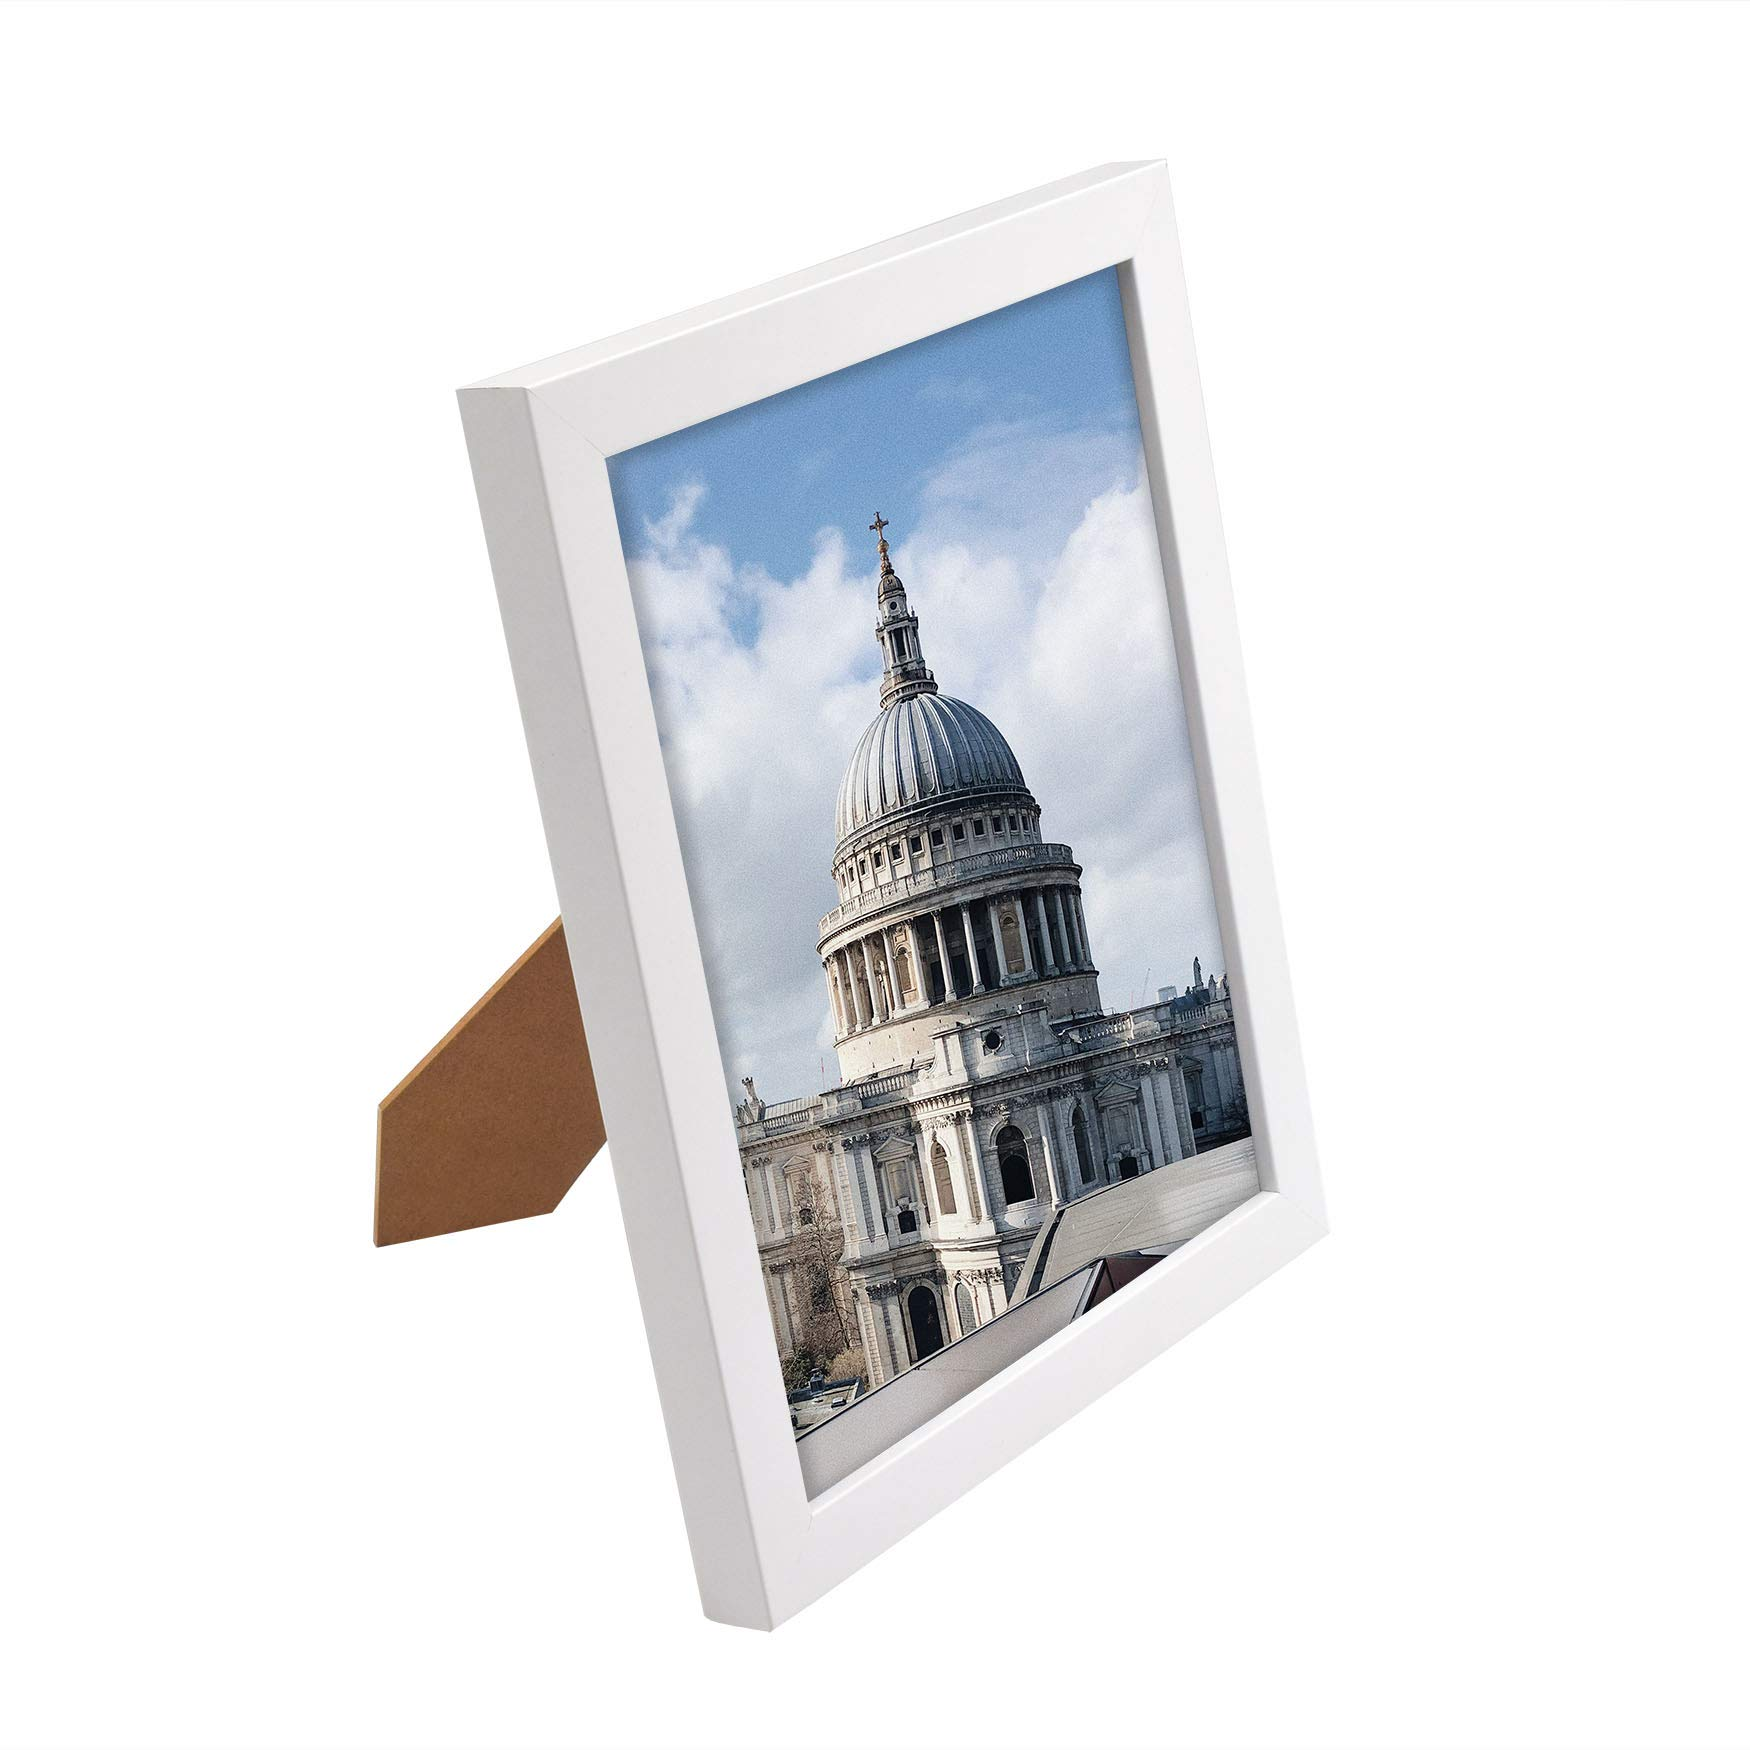 Golden State Art, White Photo Wood Collage Frame with Real Glass (8x10) by Golden State Art (Image #3)